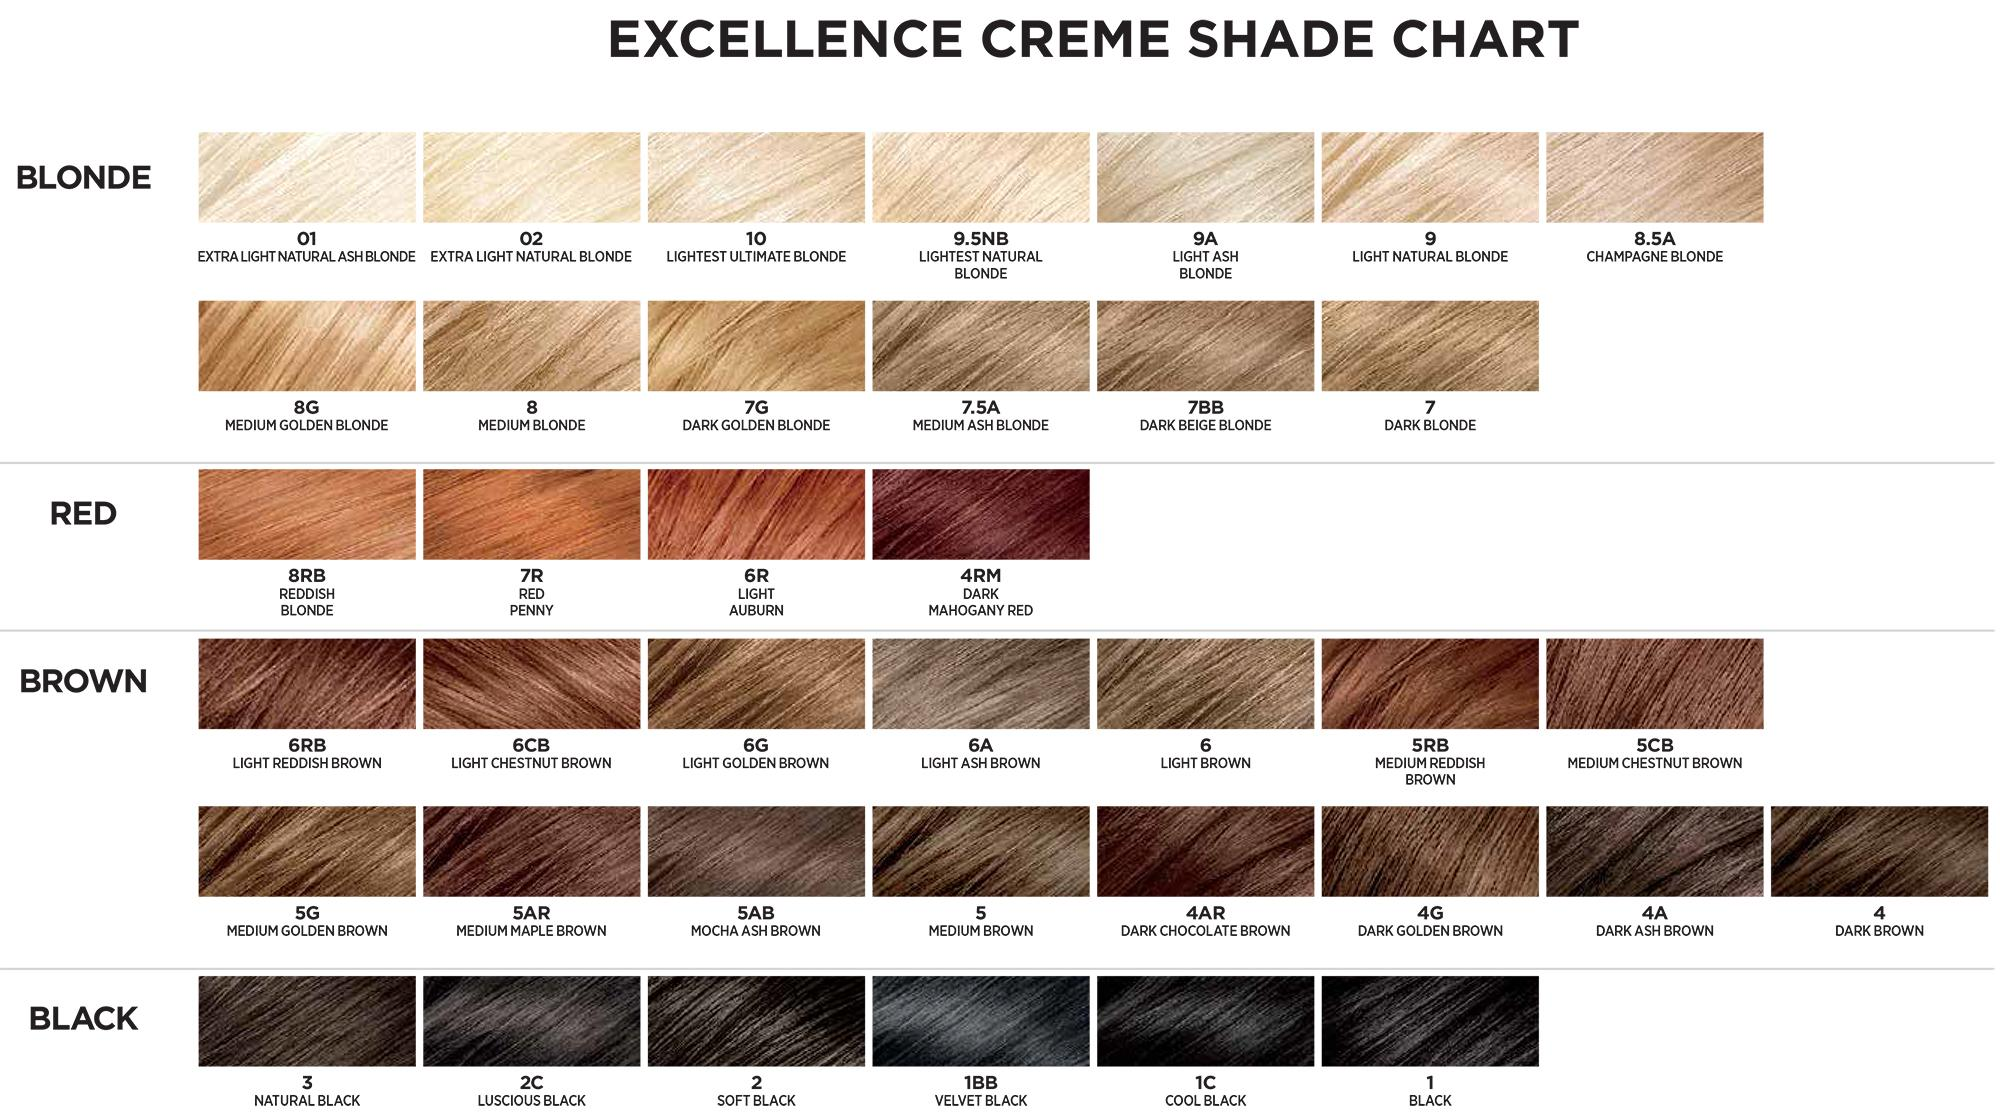 Loreal hair color chart excellence creme images free any chart loreal hair color chart excellence creme images free any chart loreal hair color chart excellence creme nvjuhfo Image collections